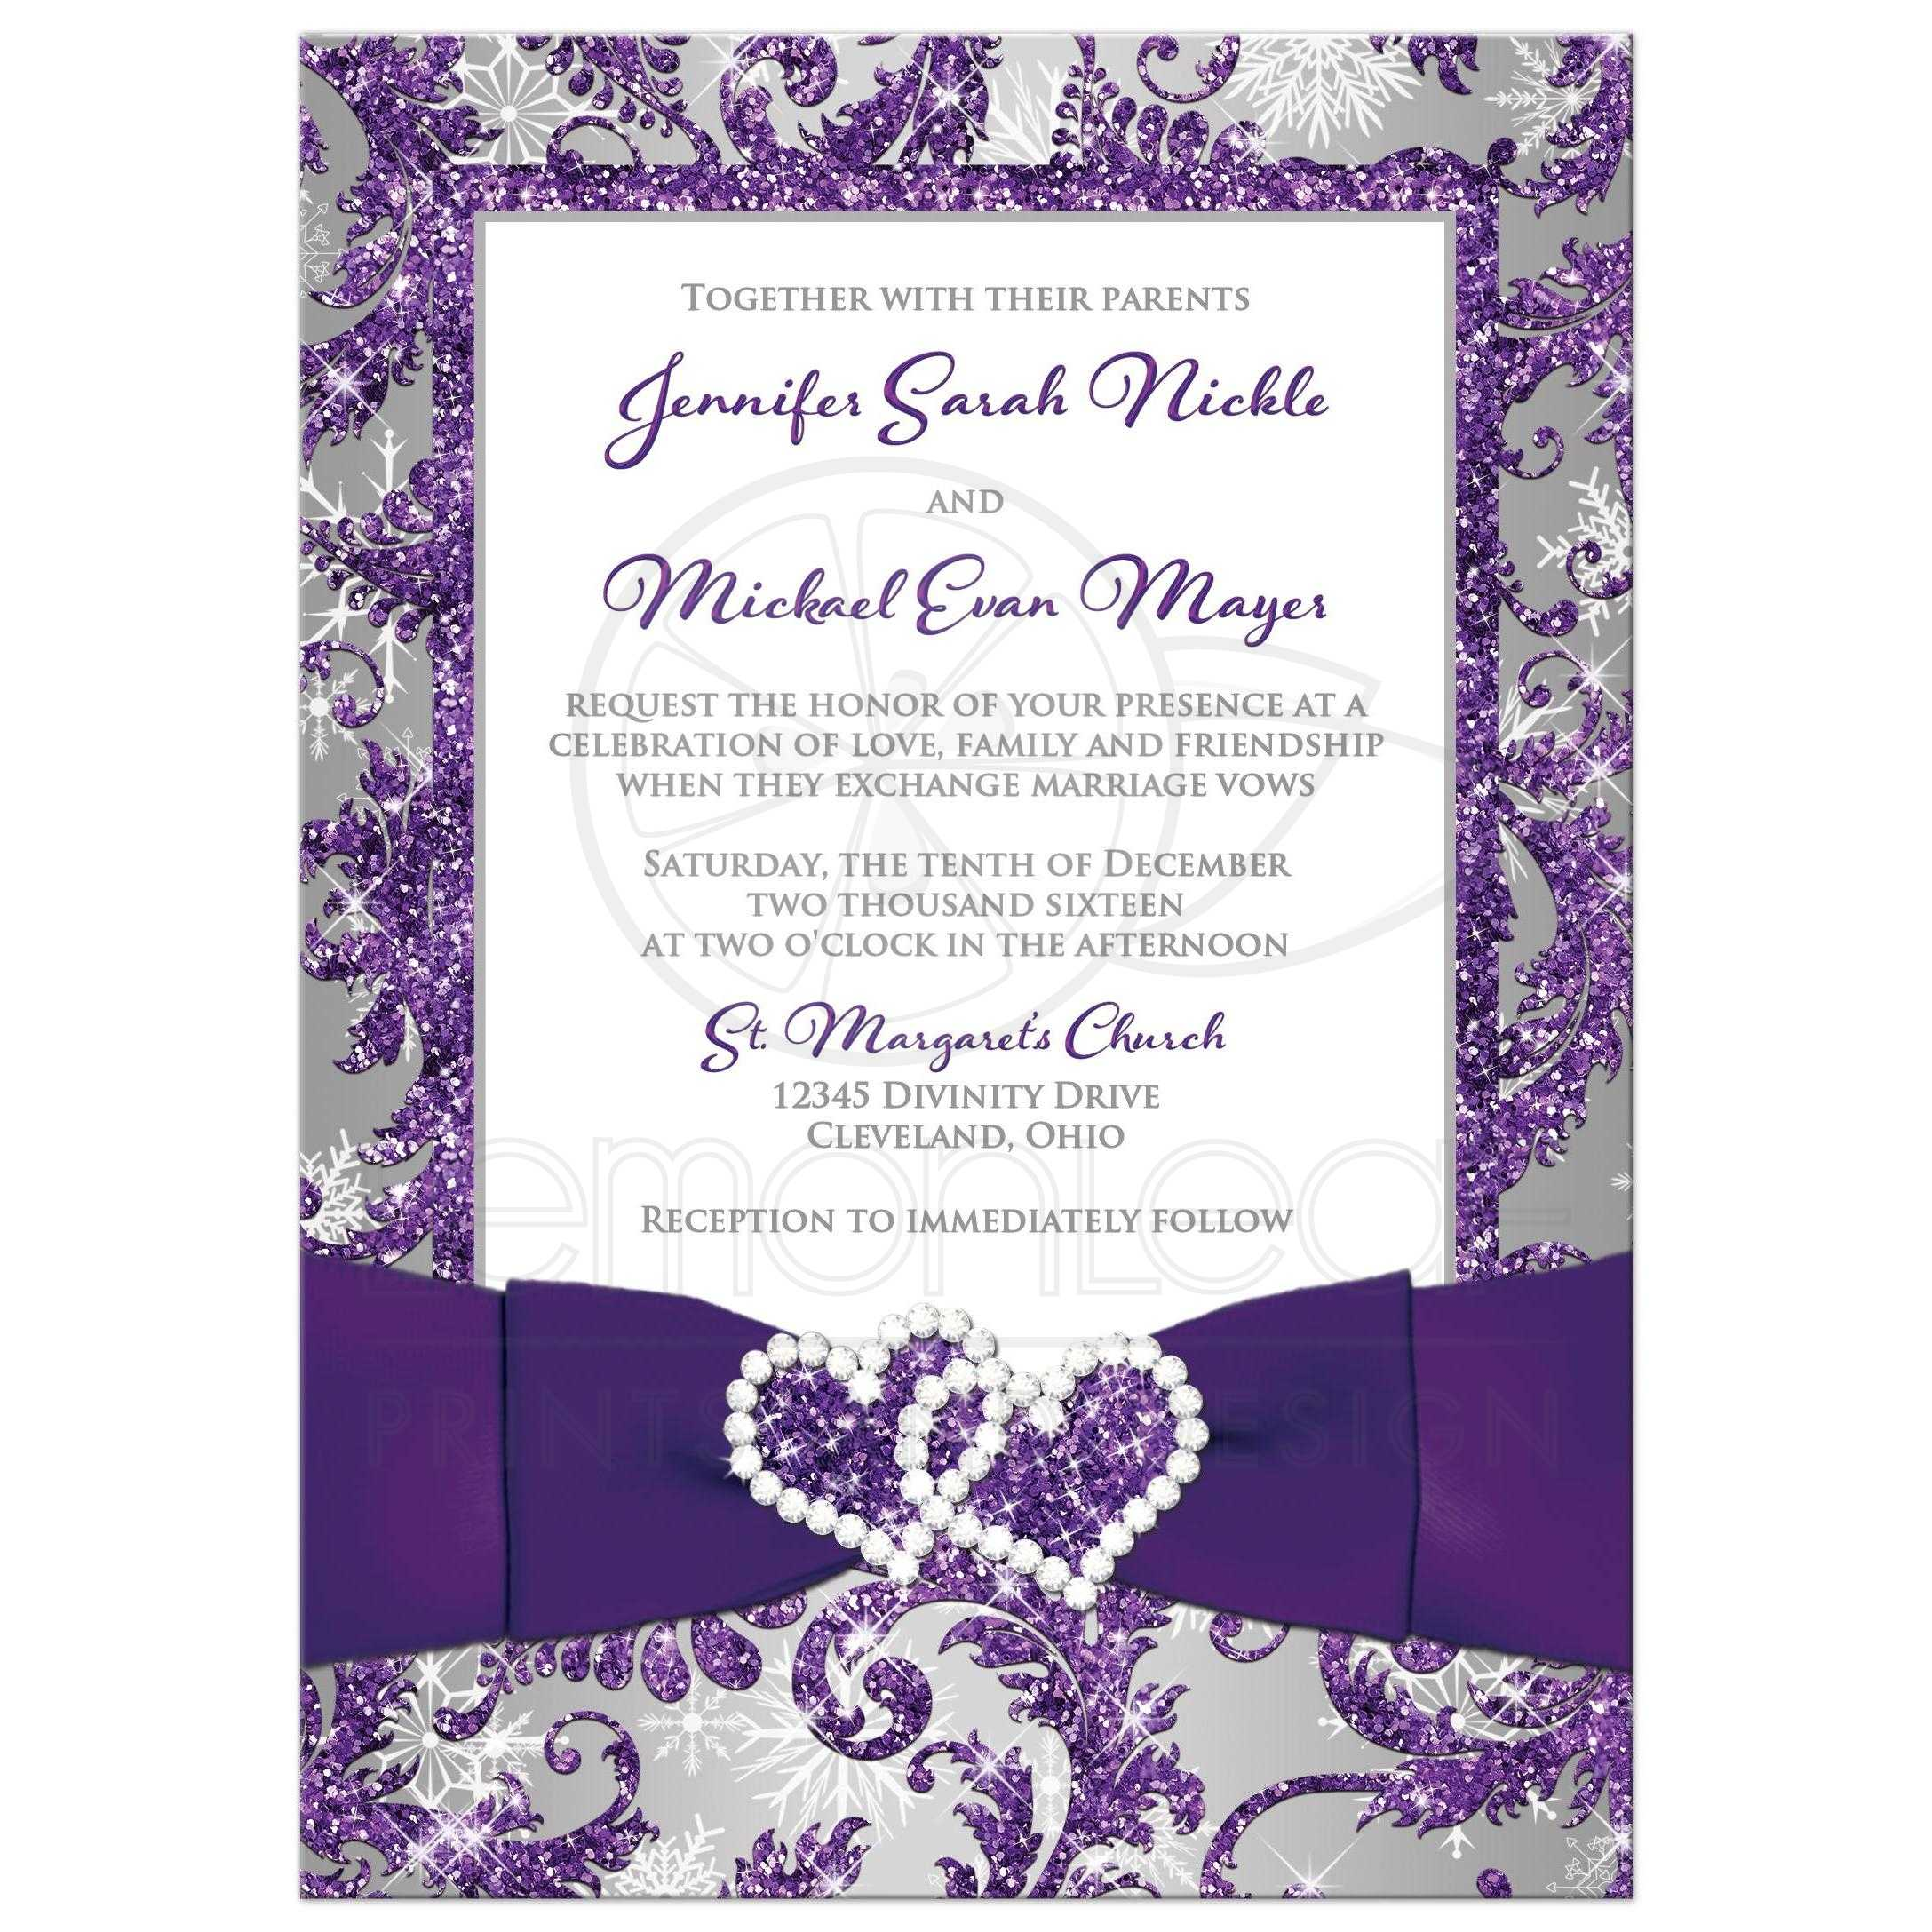 Winter wonderland photo wedding invitation purple silver white great winter wonderland photo wedding invitation in ice purple silver and white snowflakes with monicamarmolfo Image collections